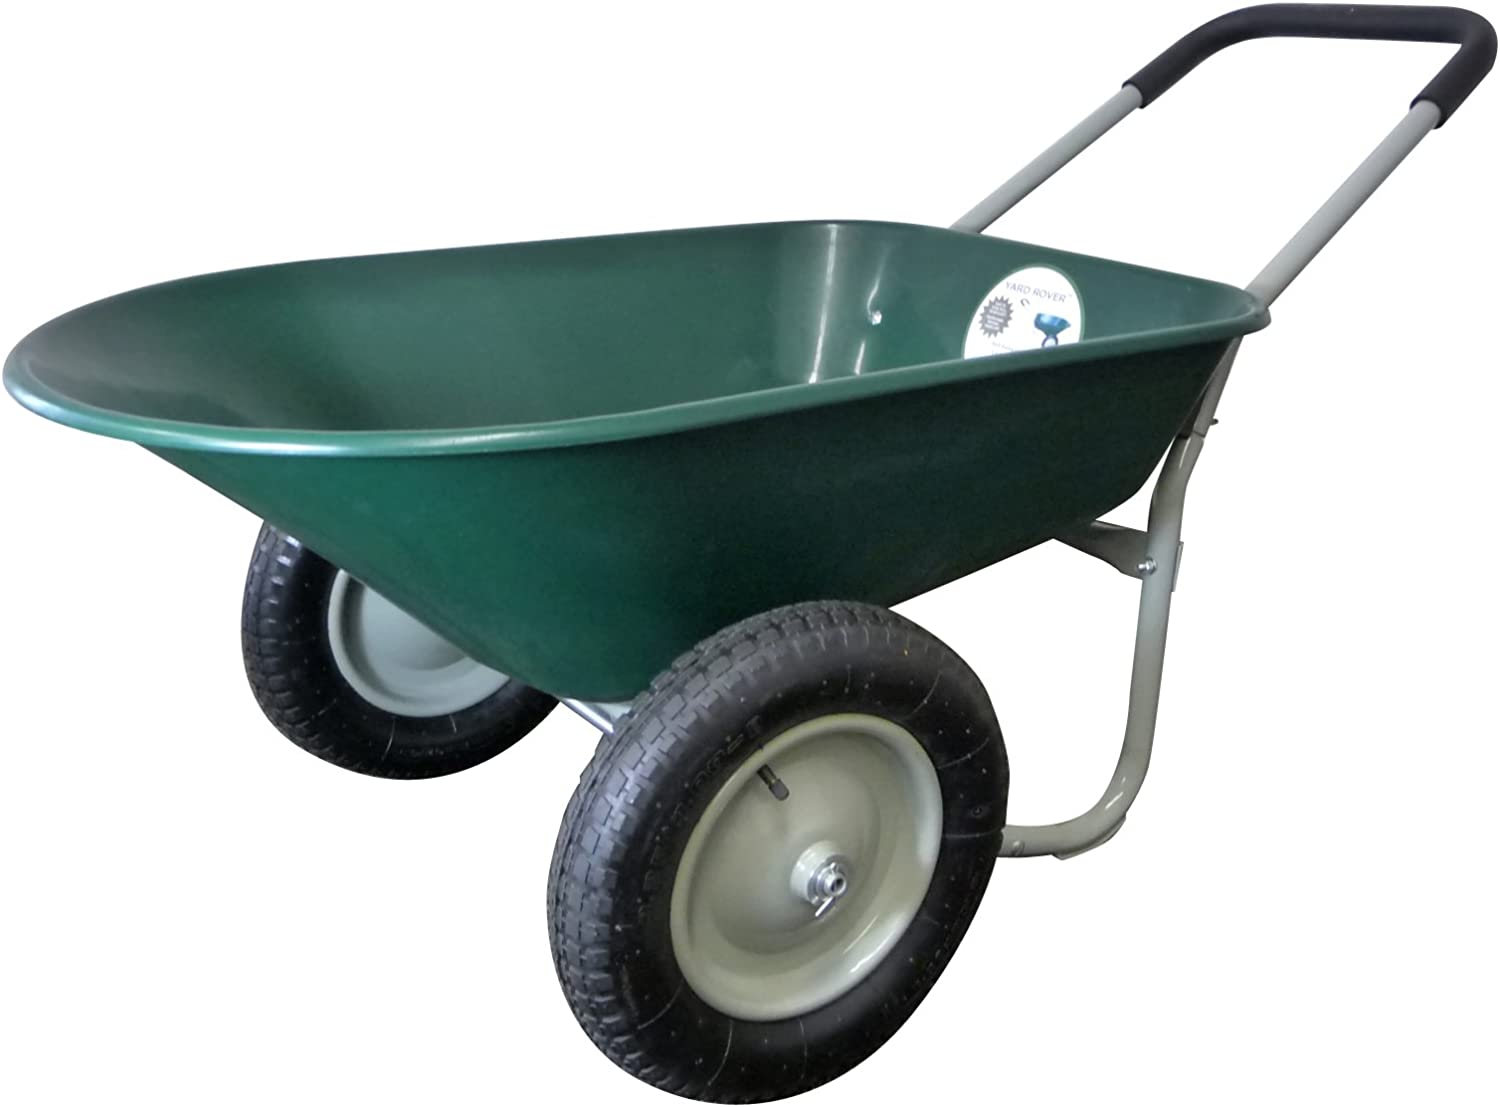 Marathon Dual-Wheel Residential Yard Rover Wheelbarrow and Yard Cart – Green